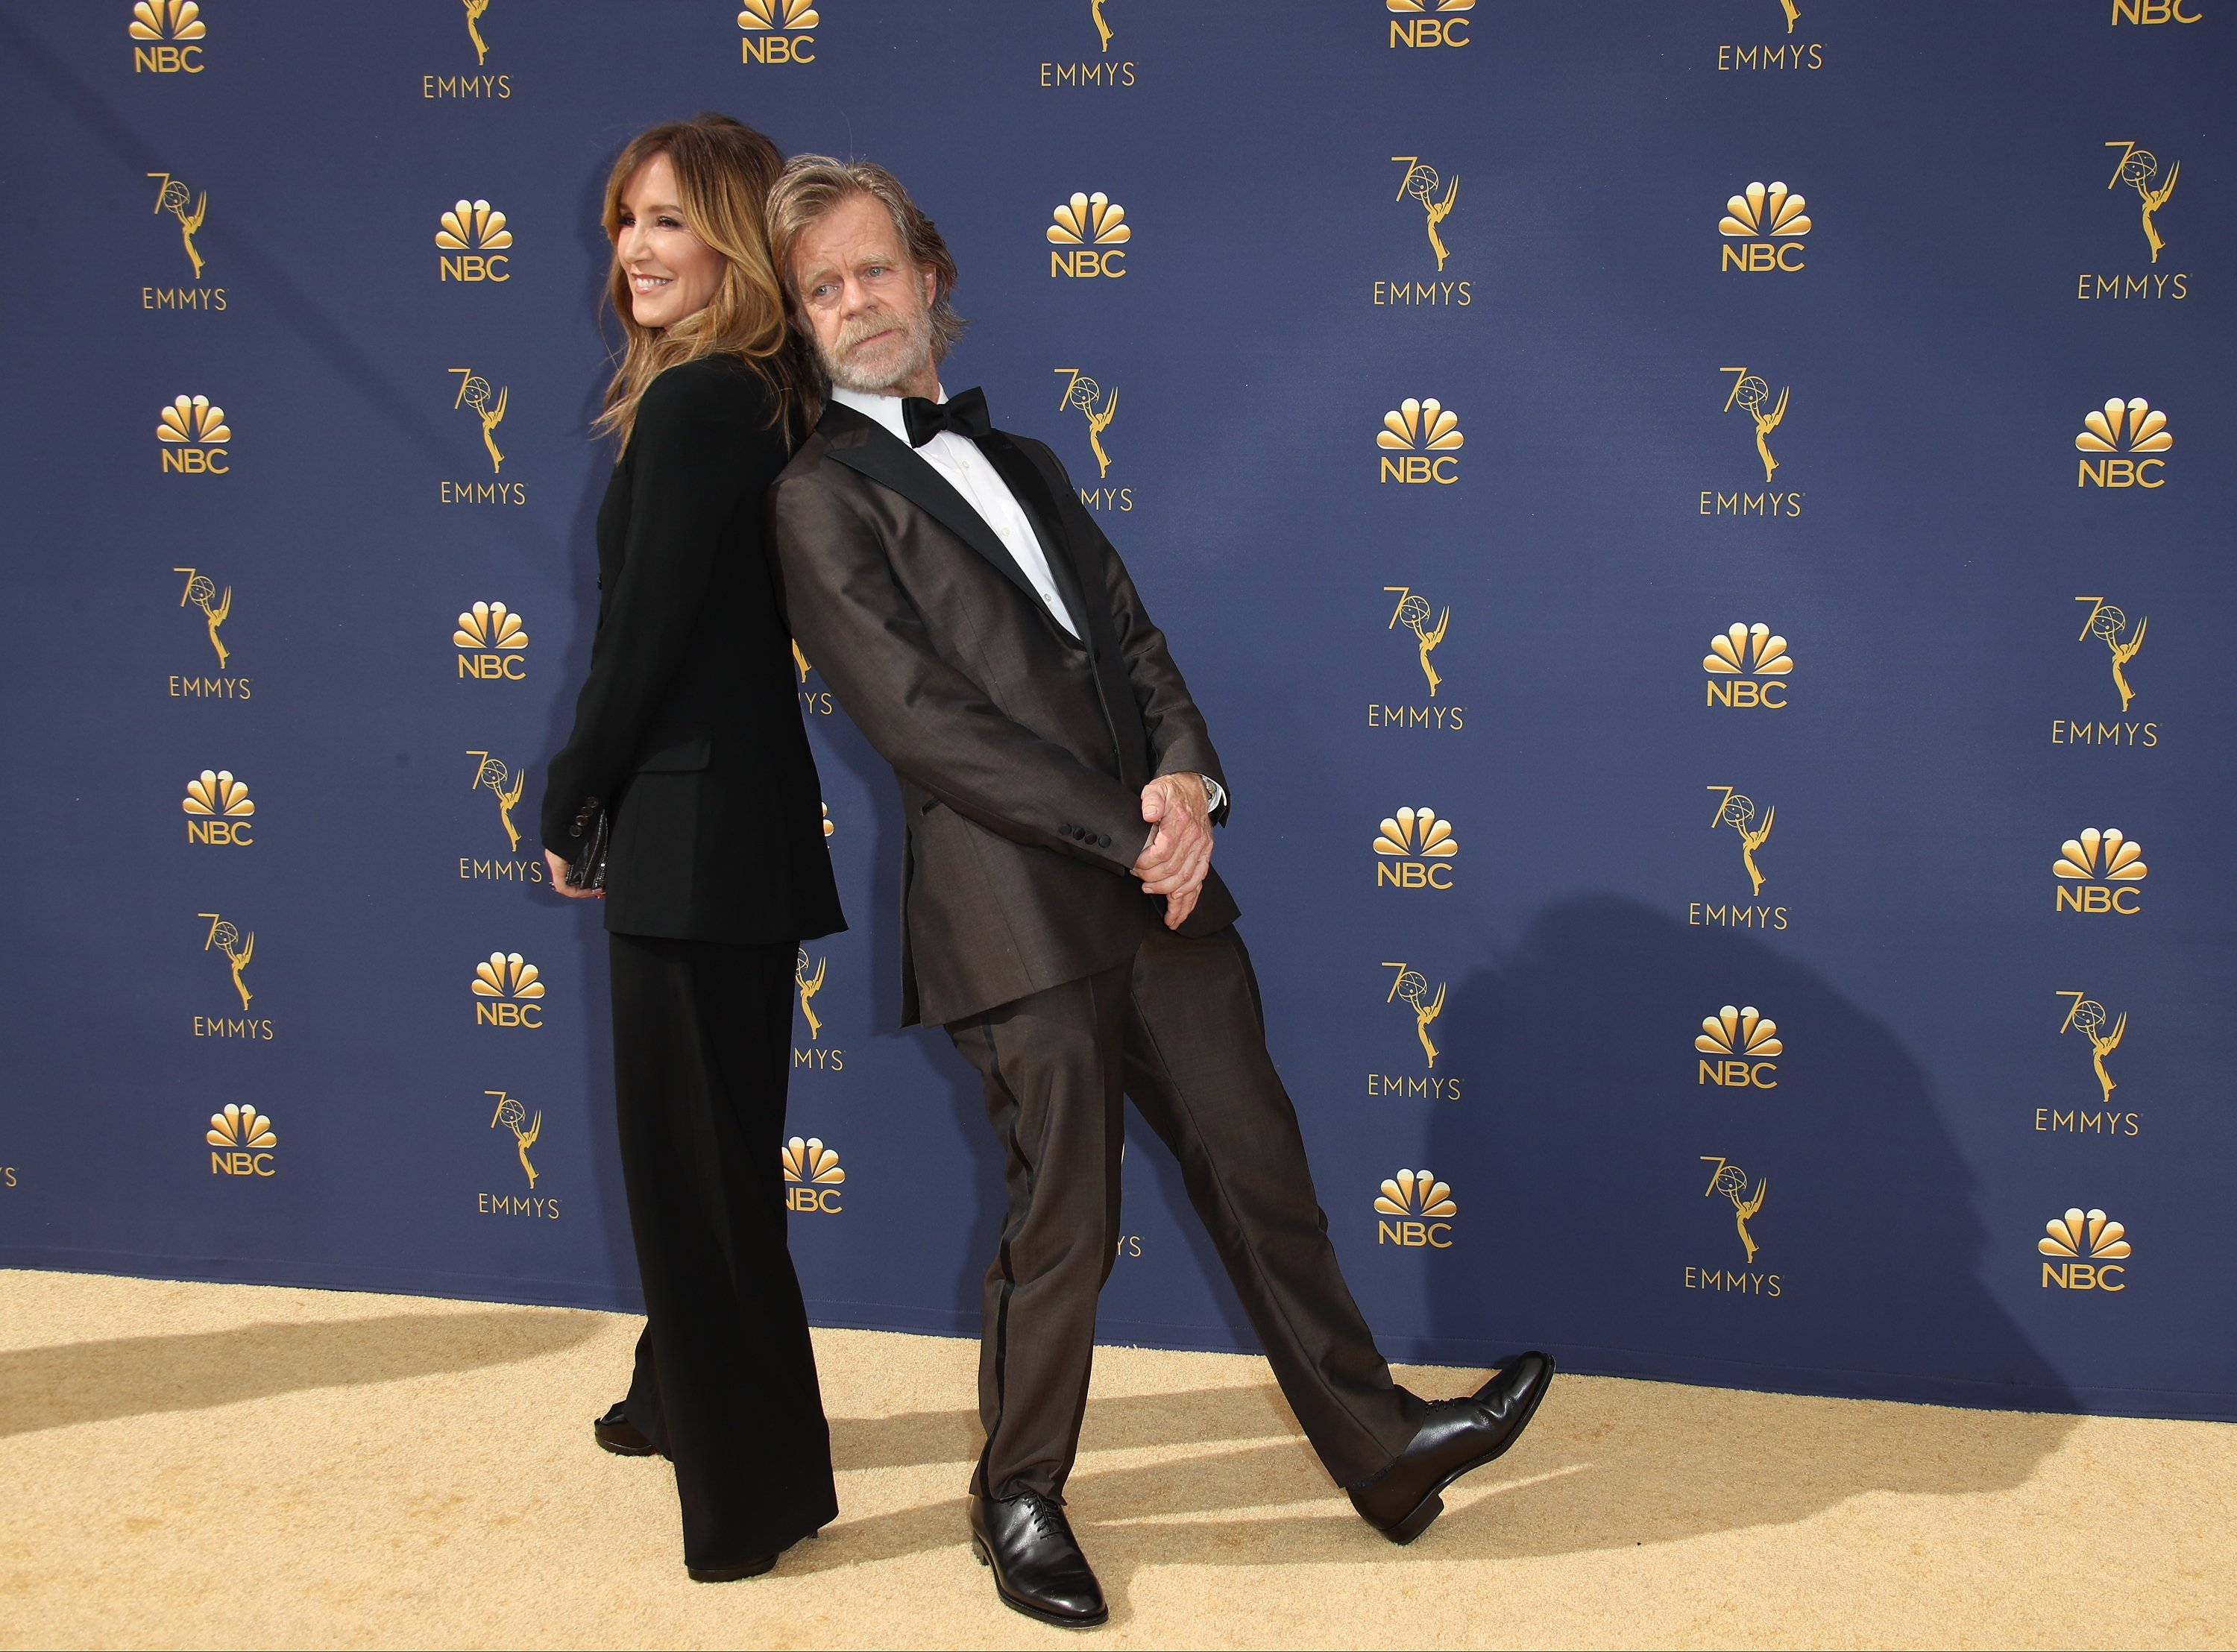 Felicity Huffman and William H. Macy attend the 70th Emmy Awards at Microsoft Theater on September 17, 2018 | Photo: GettyImages